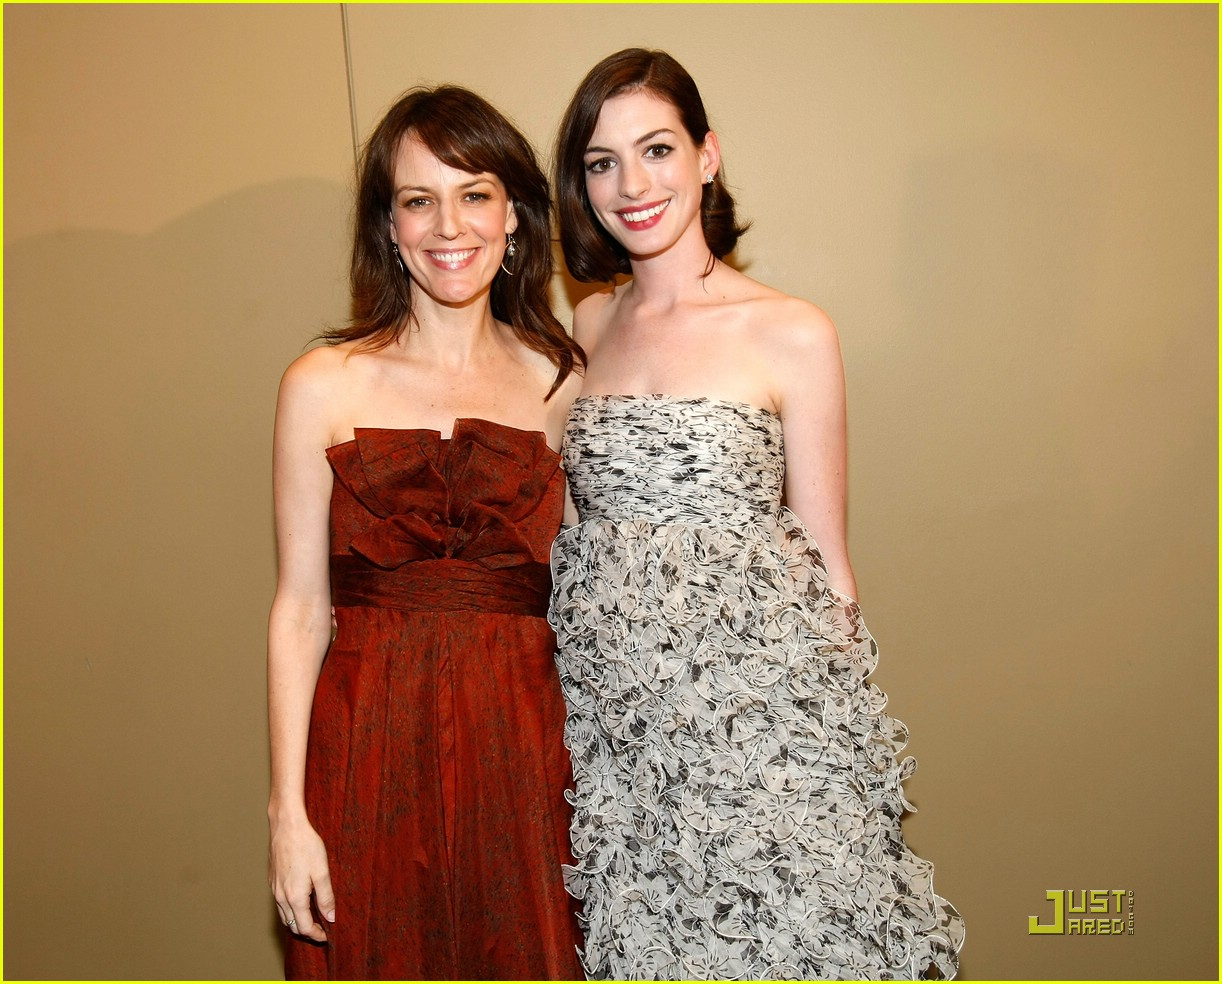 anne hathaway rachel getting married 26